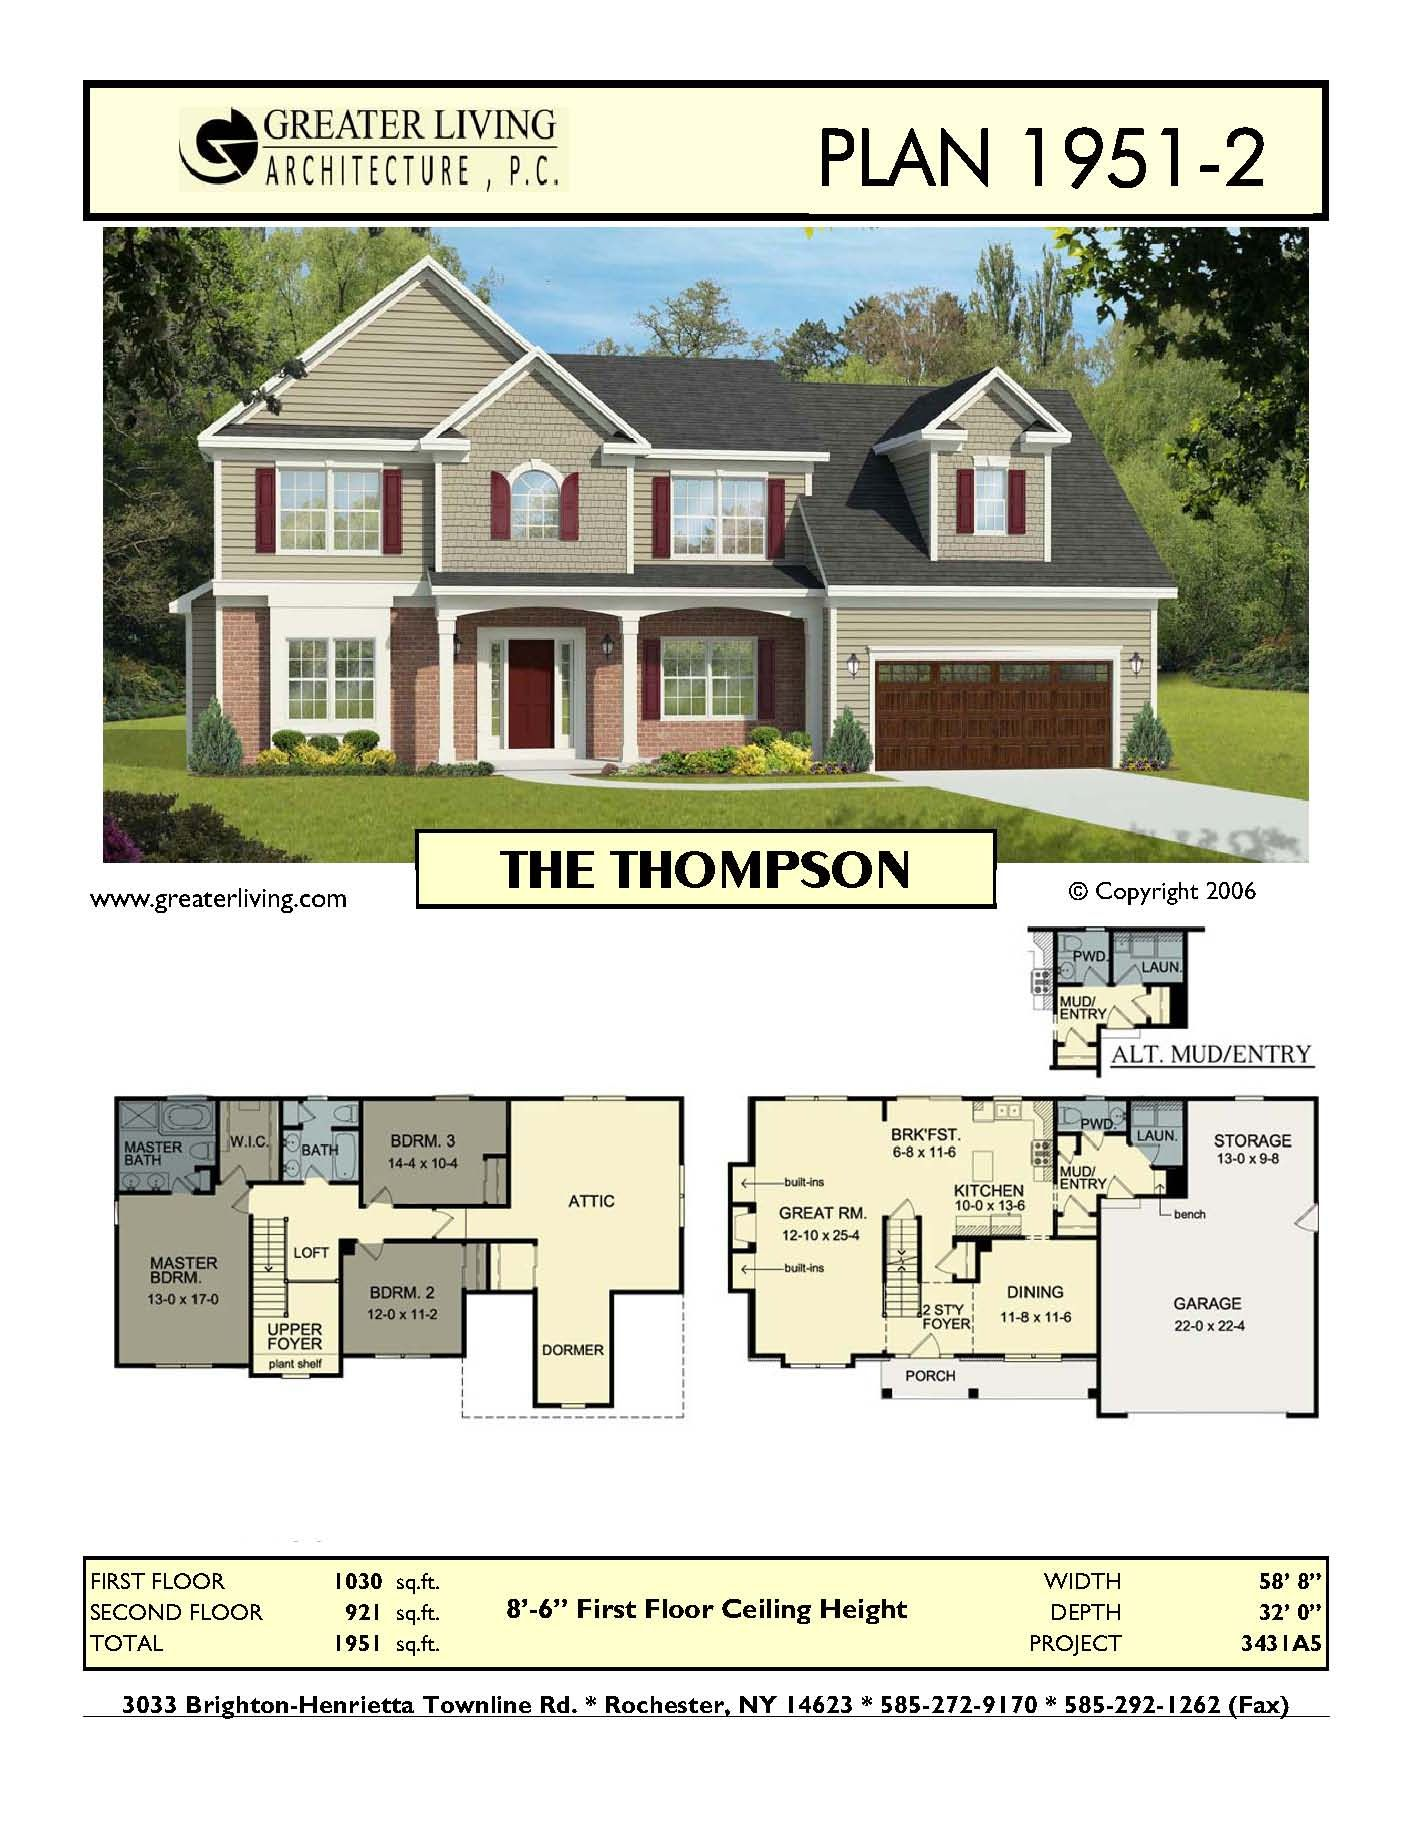 Greater Living Architecture Family House Plans House Layout Plans Sims House Plans